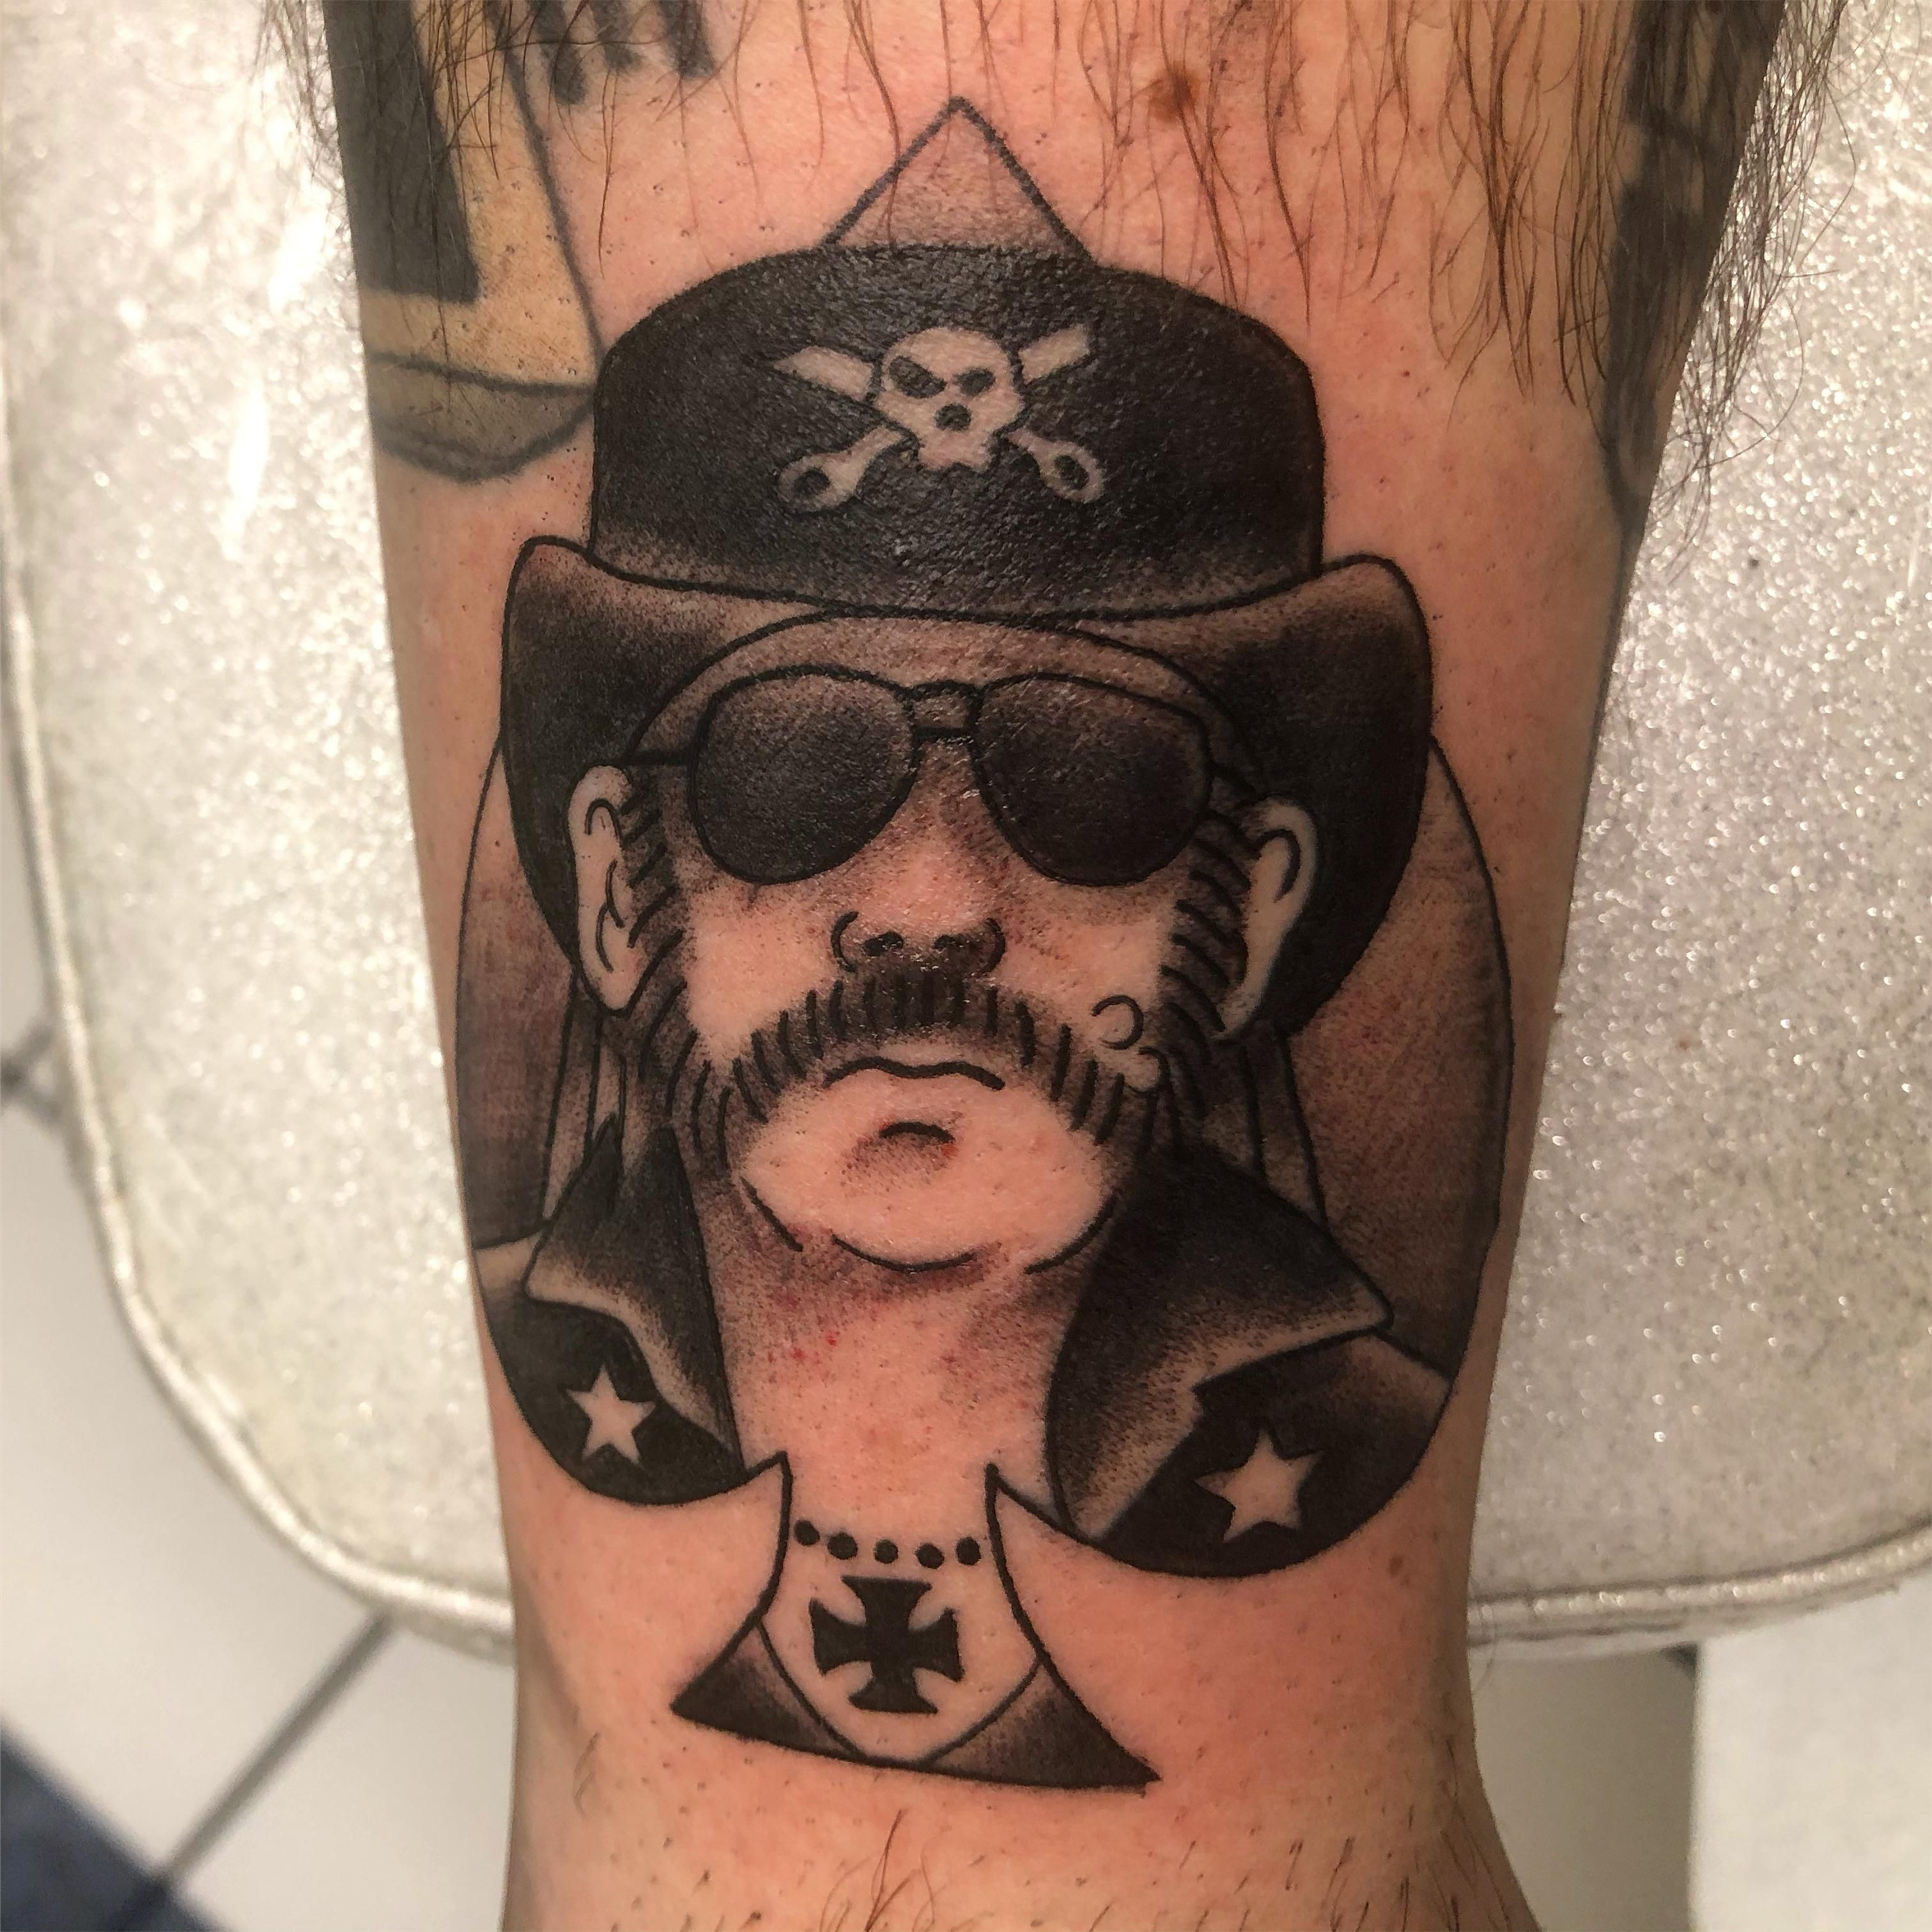 Lemmy Kilmister by Ian at Tattoo Charlies Louisville